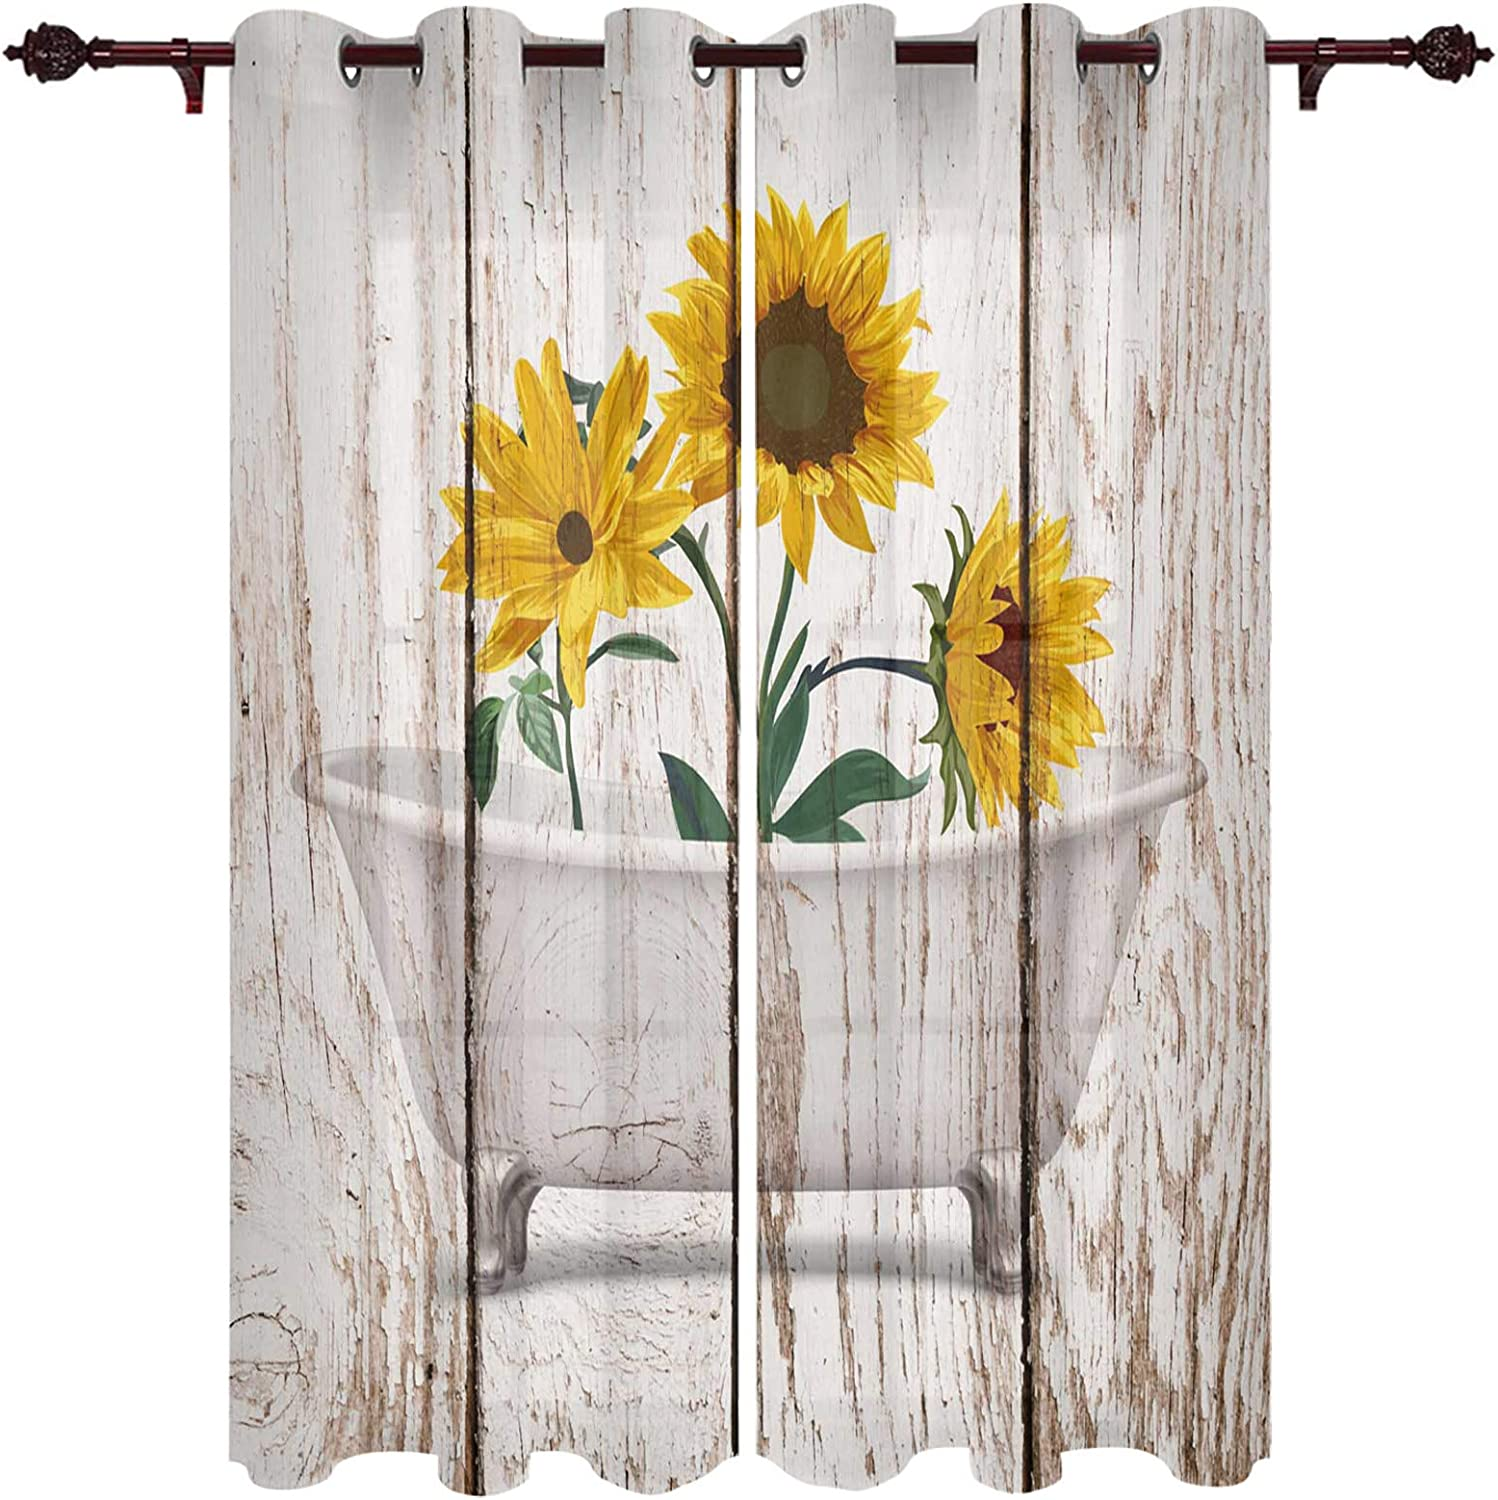 Window Curtains for Living Sale special price Sunflower Bedroom Room Direct stock discount Bathtub